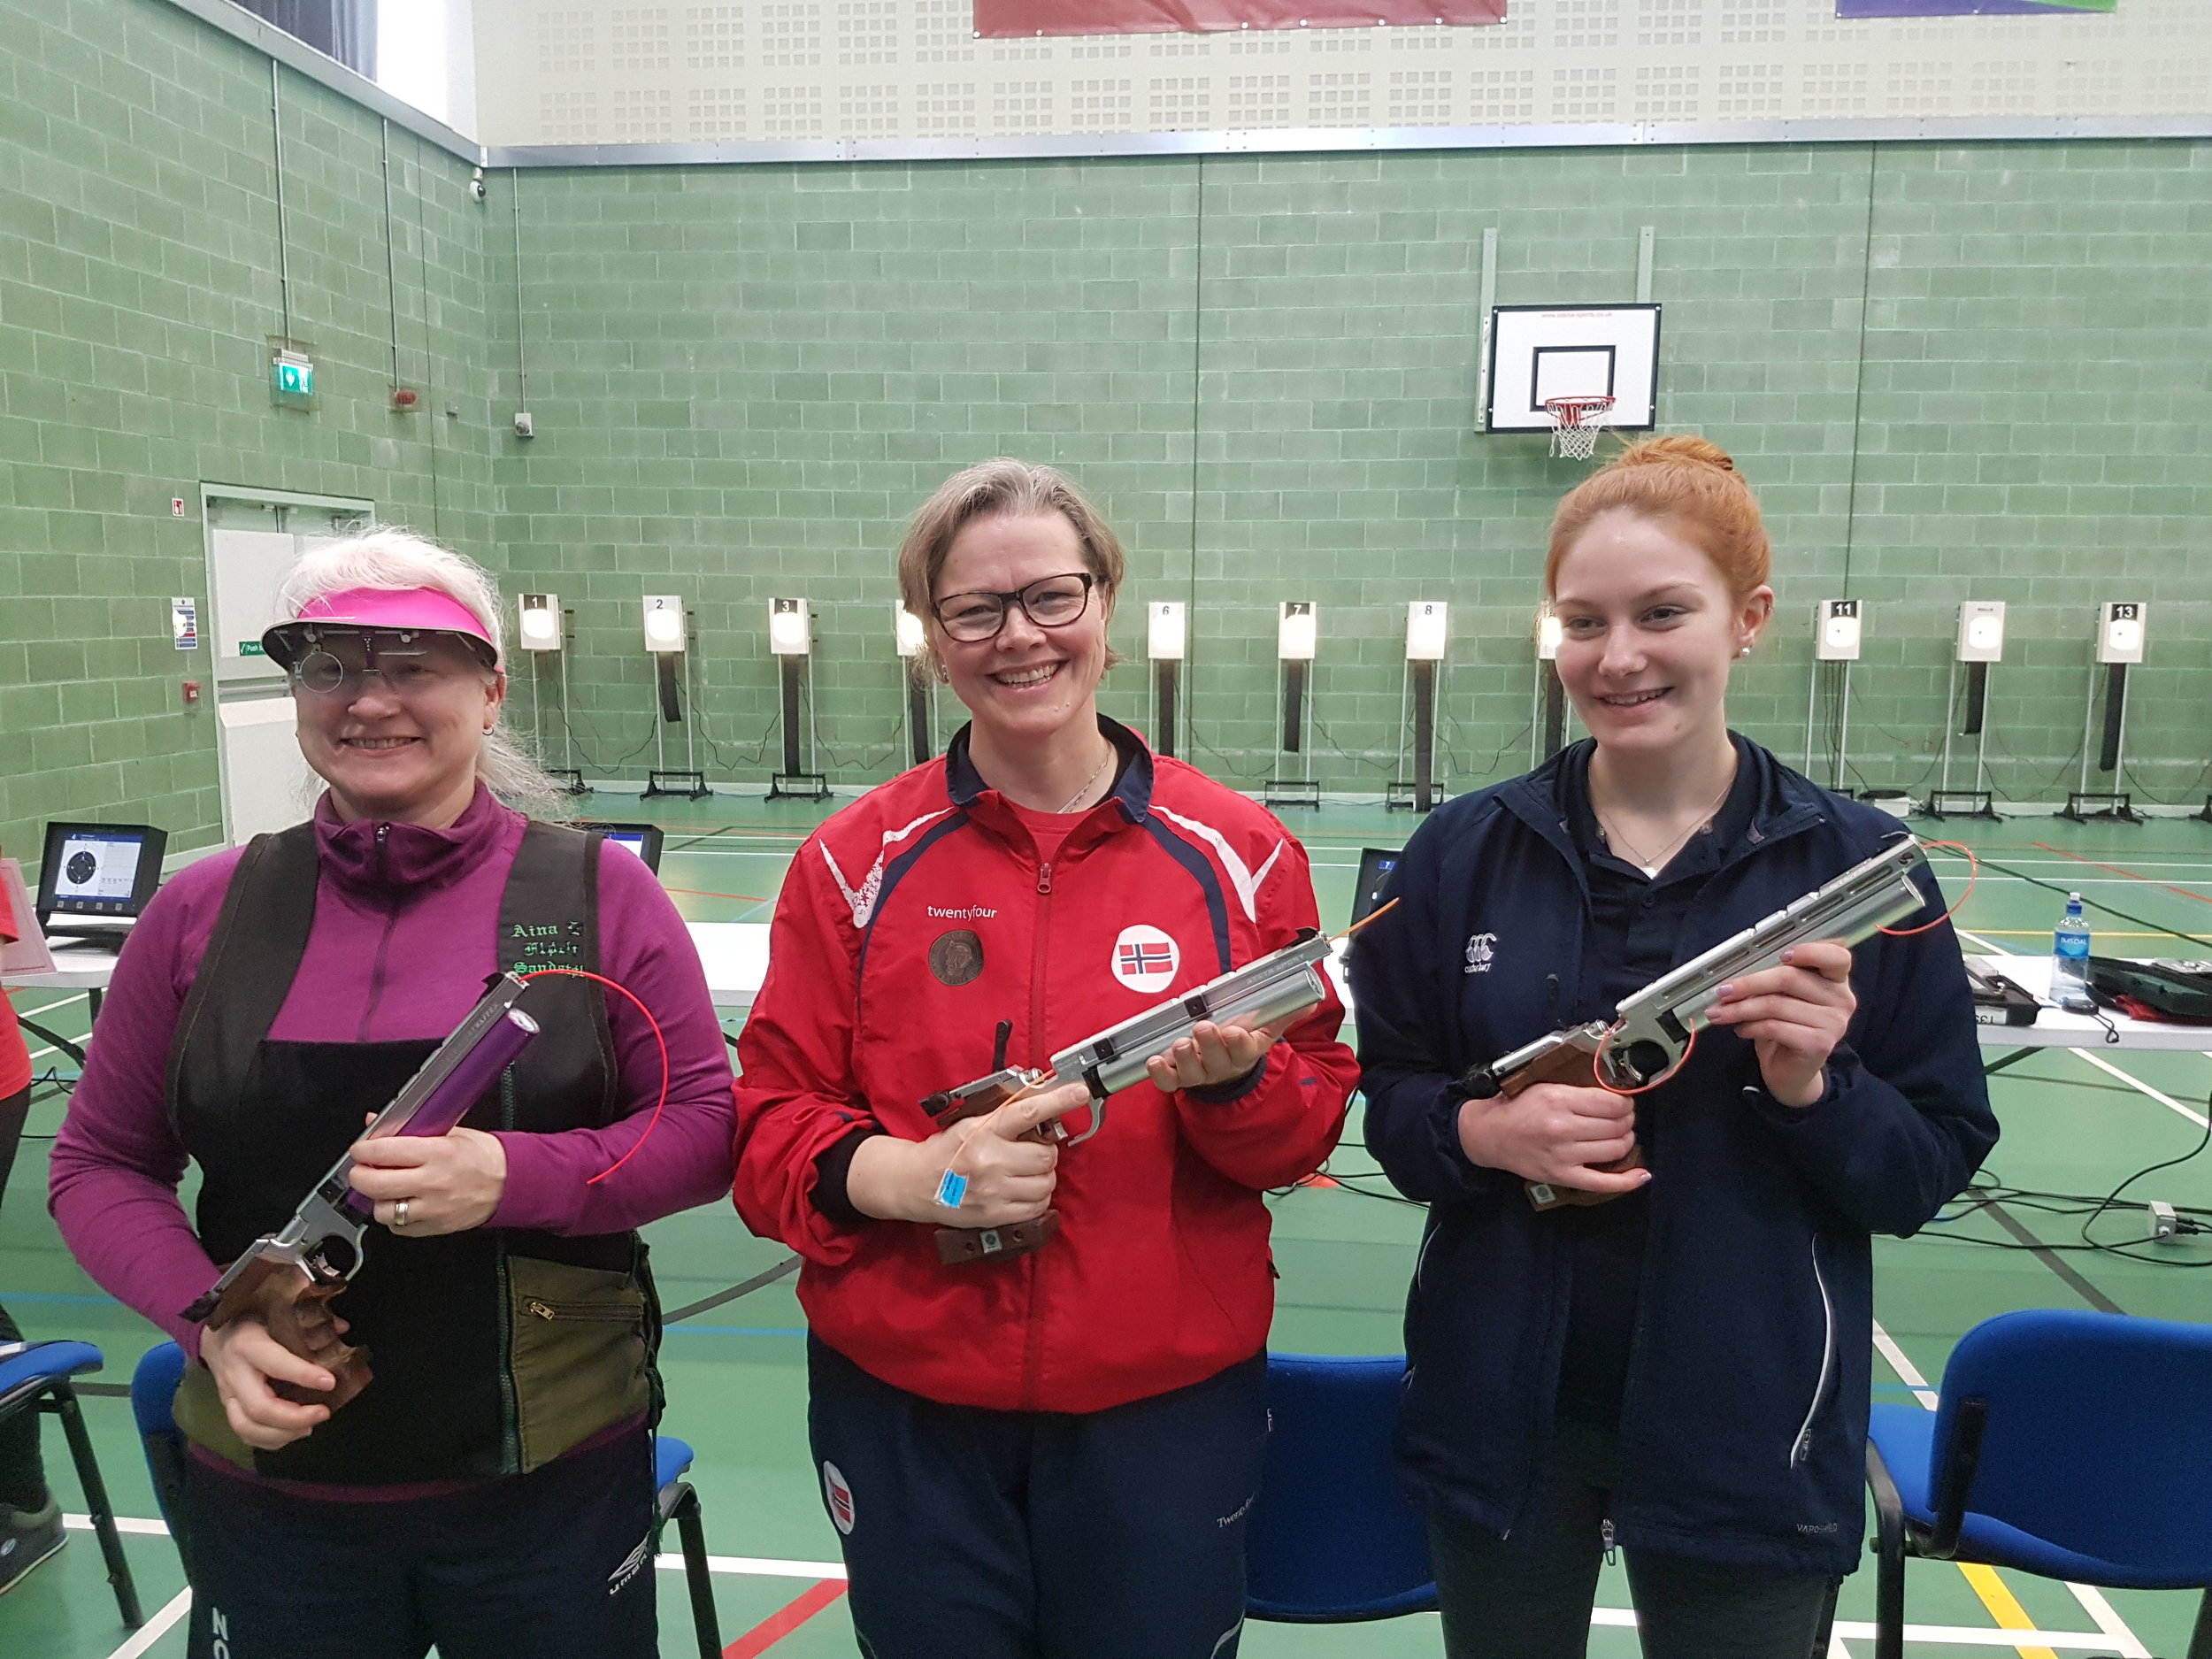 Winners - Women's 10m Air Pistol Championships